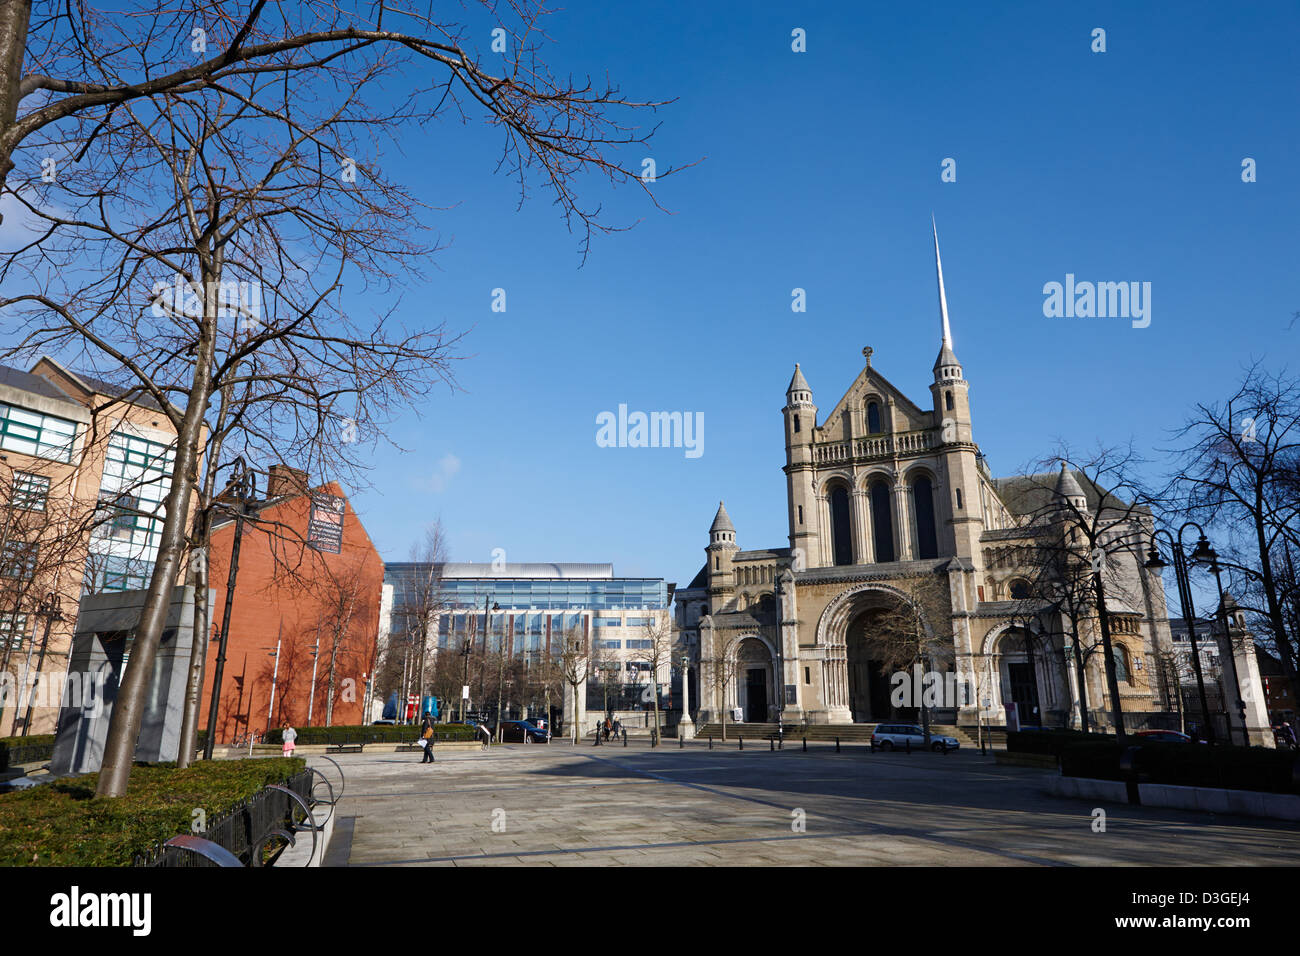 saint annes belfast cathedral and writers square Belfast Northern Ireland uk - Stock Image